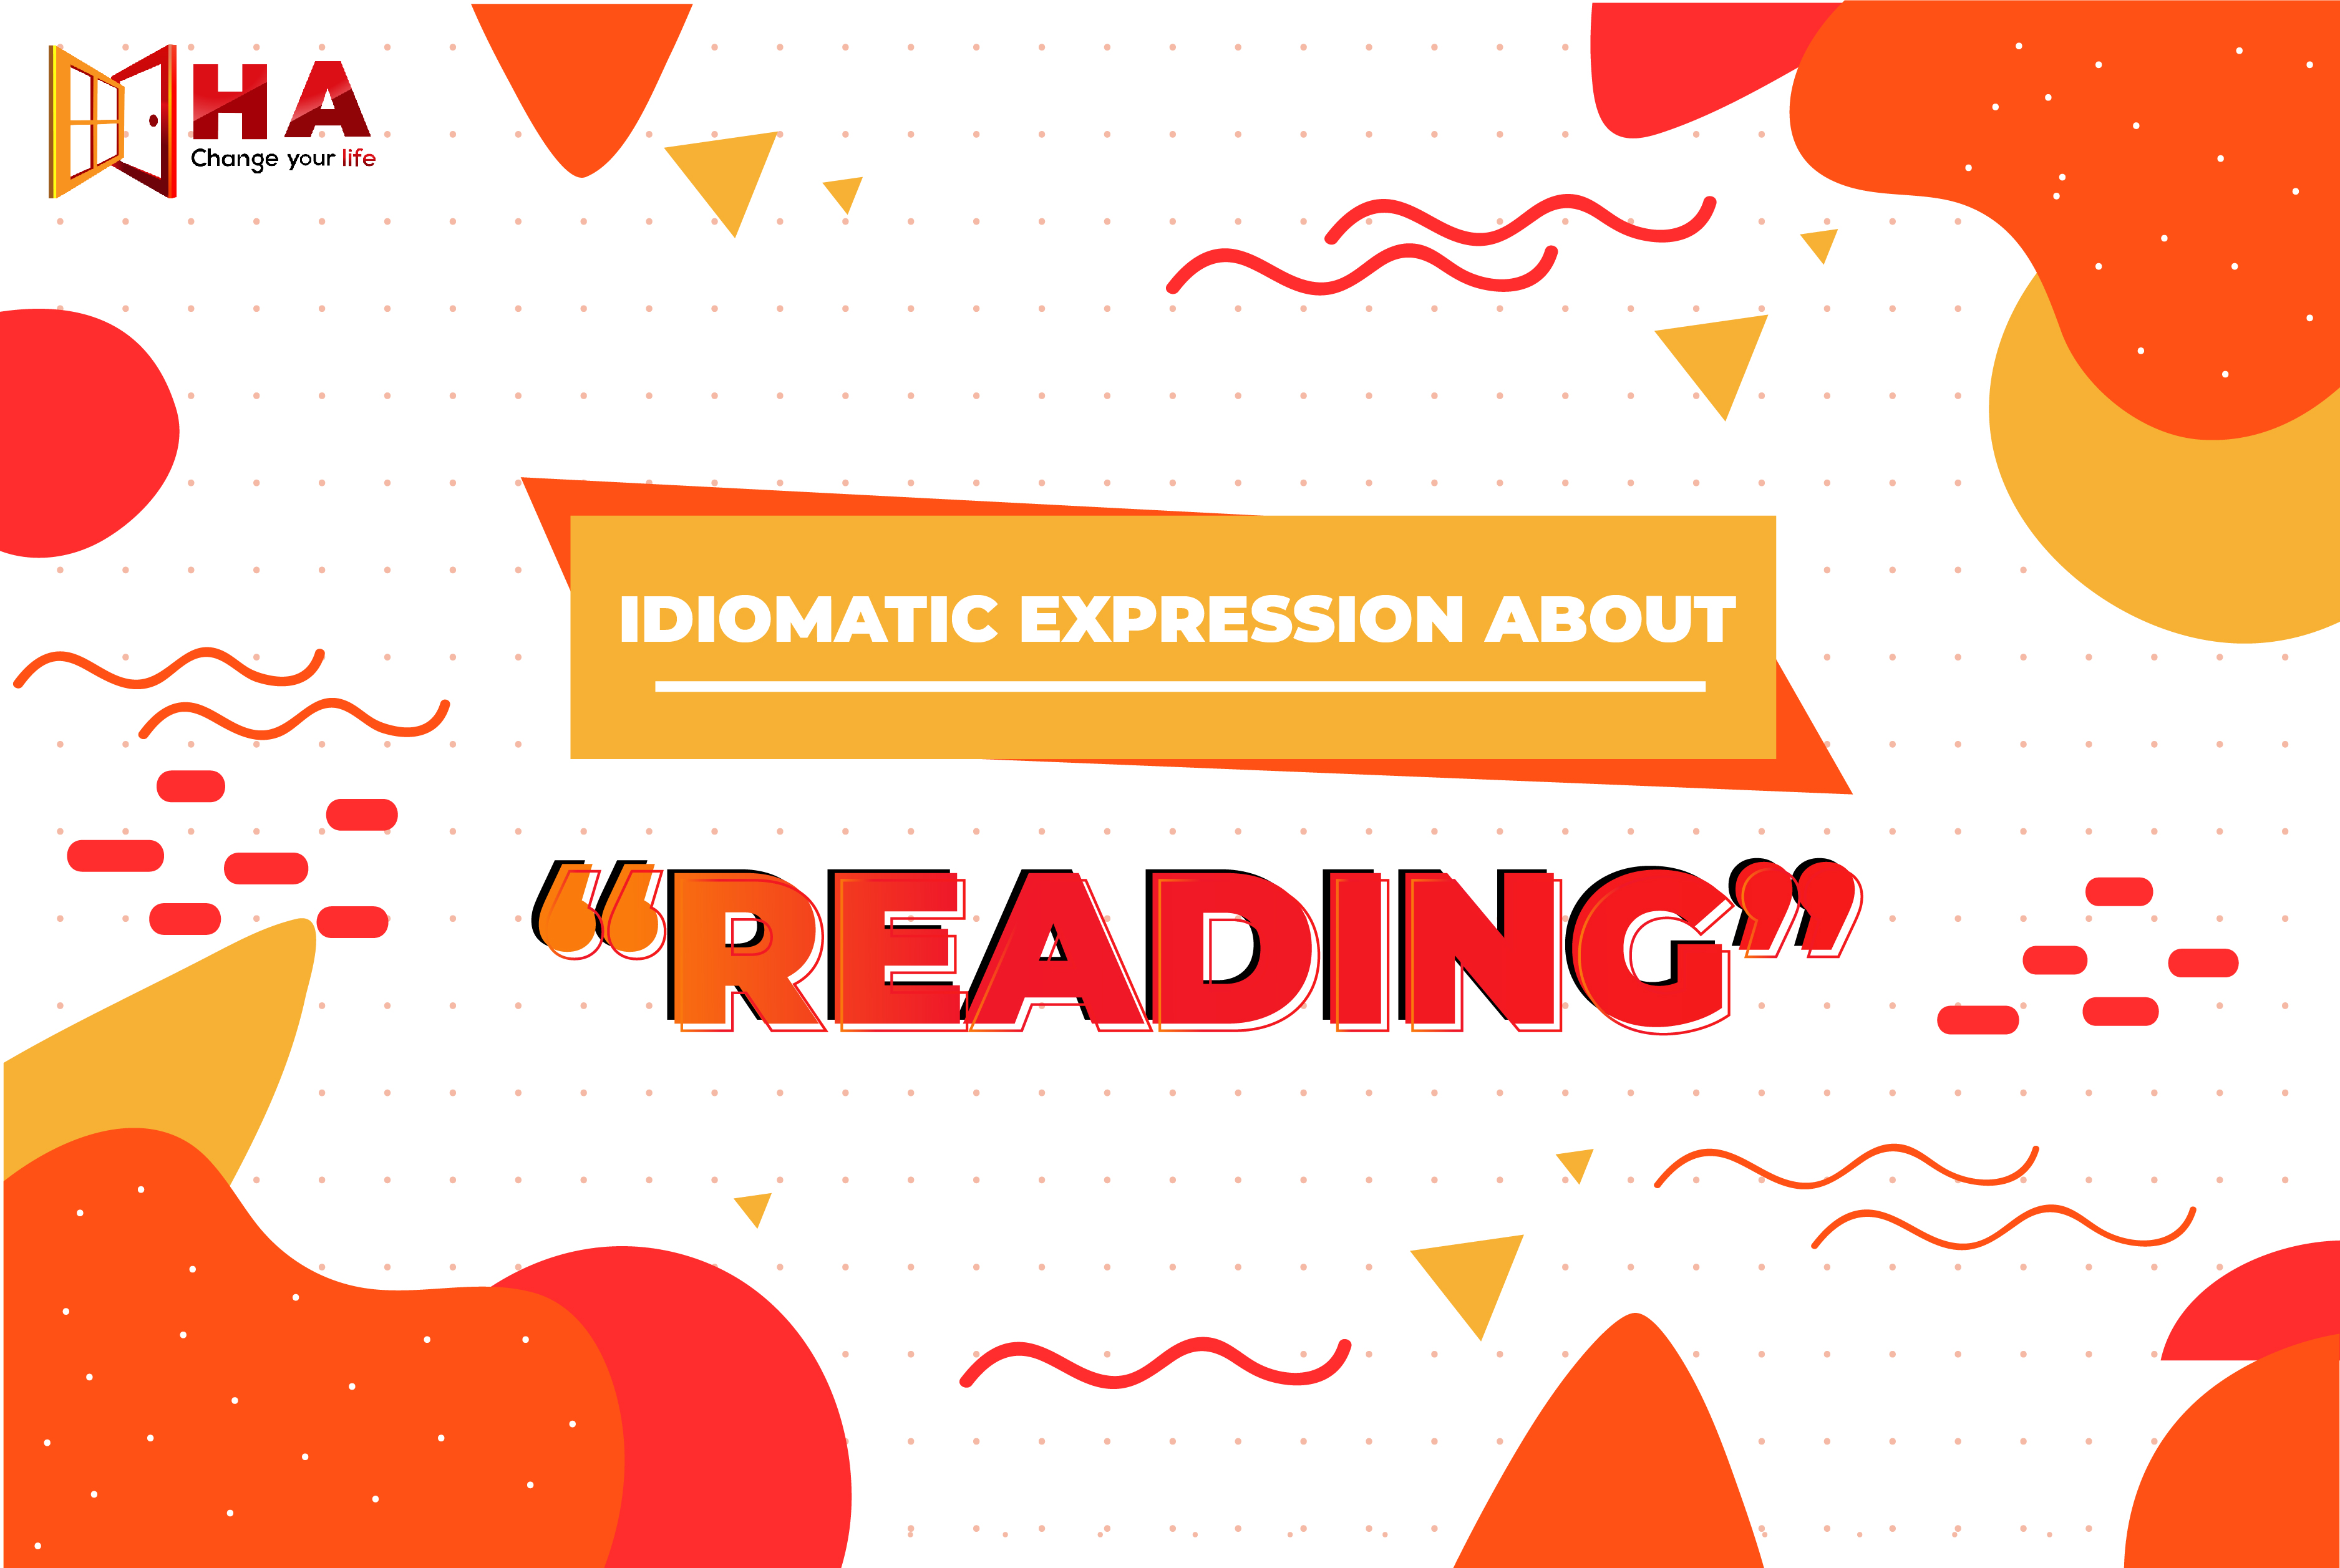 IDIOMATIC EXPRESSION ABOUT READING,Học tiếng anh, học tiếng anh ha centre, học tiếng anh ở hà nội, học tiếng anh ở bắc ninh, Khóa học ielts, khóa học ielts ha centre, khoá học ielts tại hà nội, khoá học ielts tại bắc ninh, Dạy tiếng anh, dạy tiếng anh Ha centre, dạy tiếng anh tại bắc ninh, dạy tiếng anh tại hà nội, luyện thi ielts, luyện thi ielts ha centre, luyện thi ielts ở bắc ninh, luyện thi ielts ở hà nội, Học ielts, học ielts hà nội, học ielts bắc ninh, học ielts ha centre